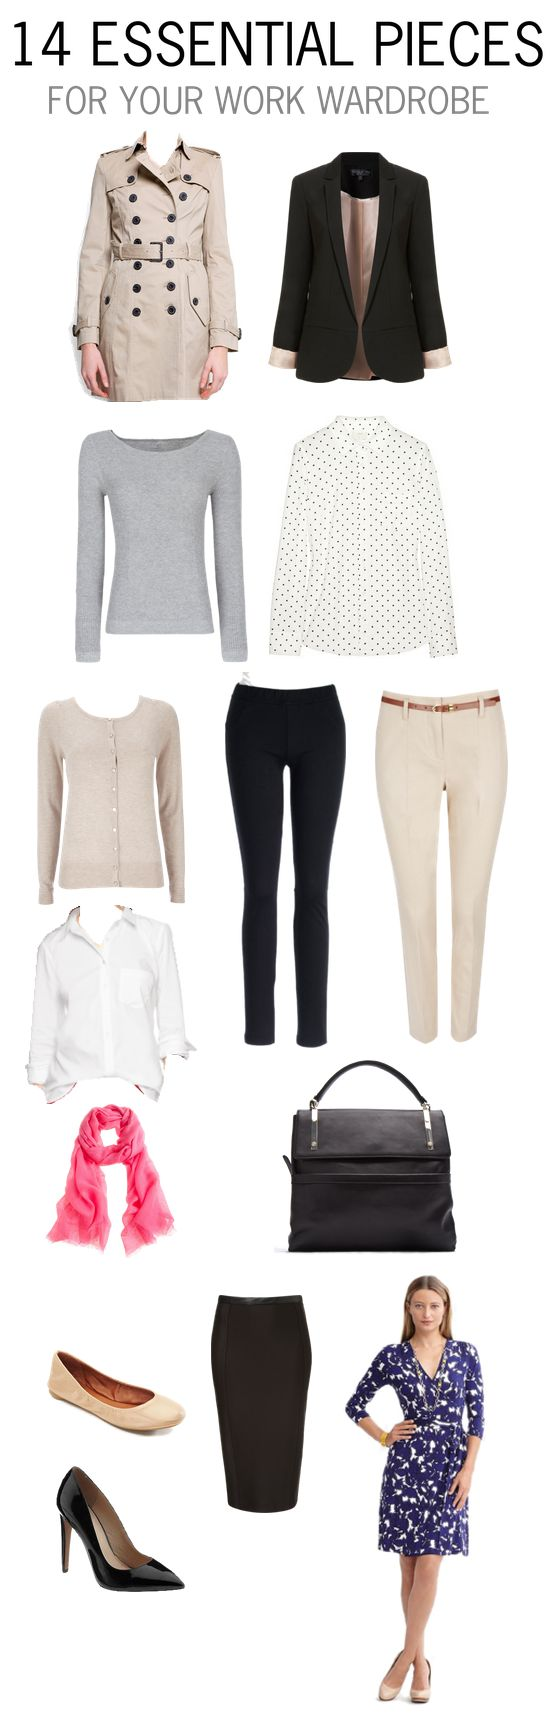 """I recently saw something on Pinterest that I loved—Shopbop designed a """"workwear ultimate closet"""" with a few key items and then created 10 work-appropriate looks from those items. Because it's Shopbop,..."""